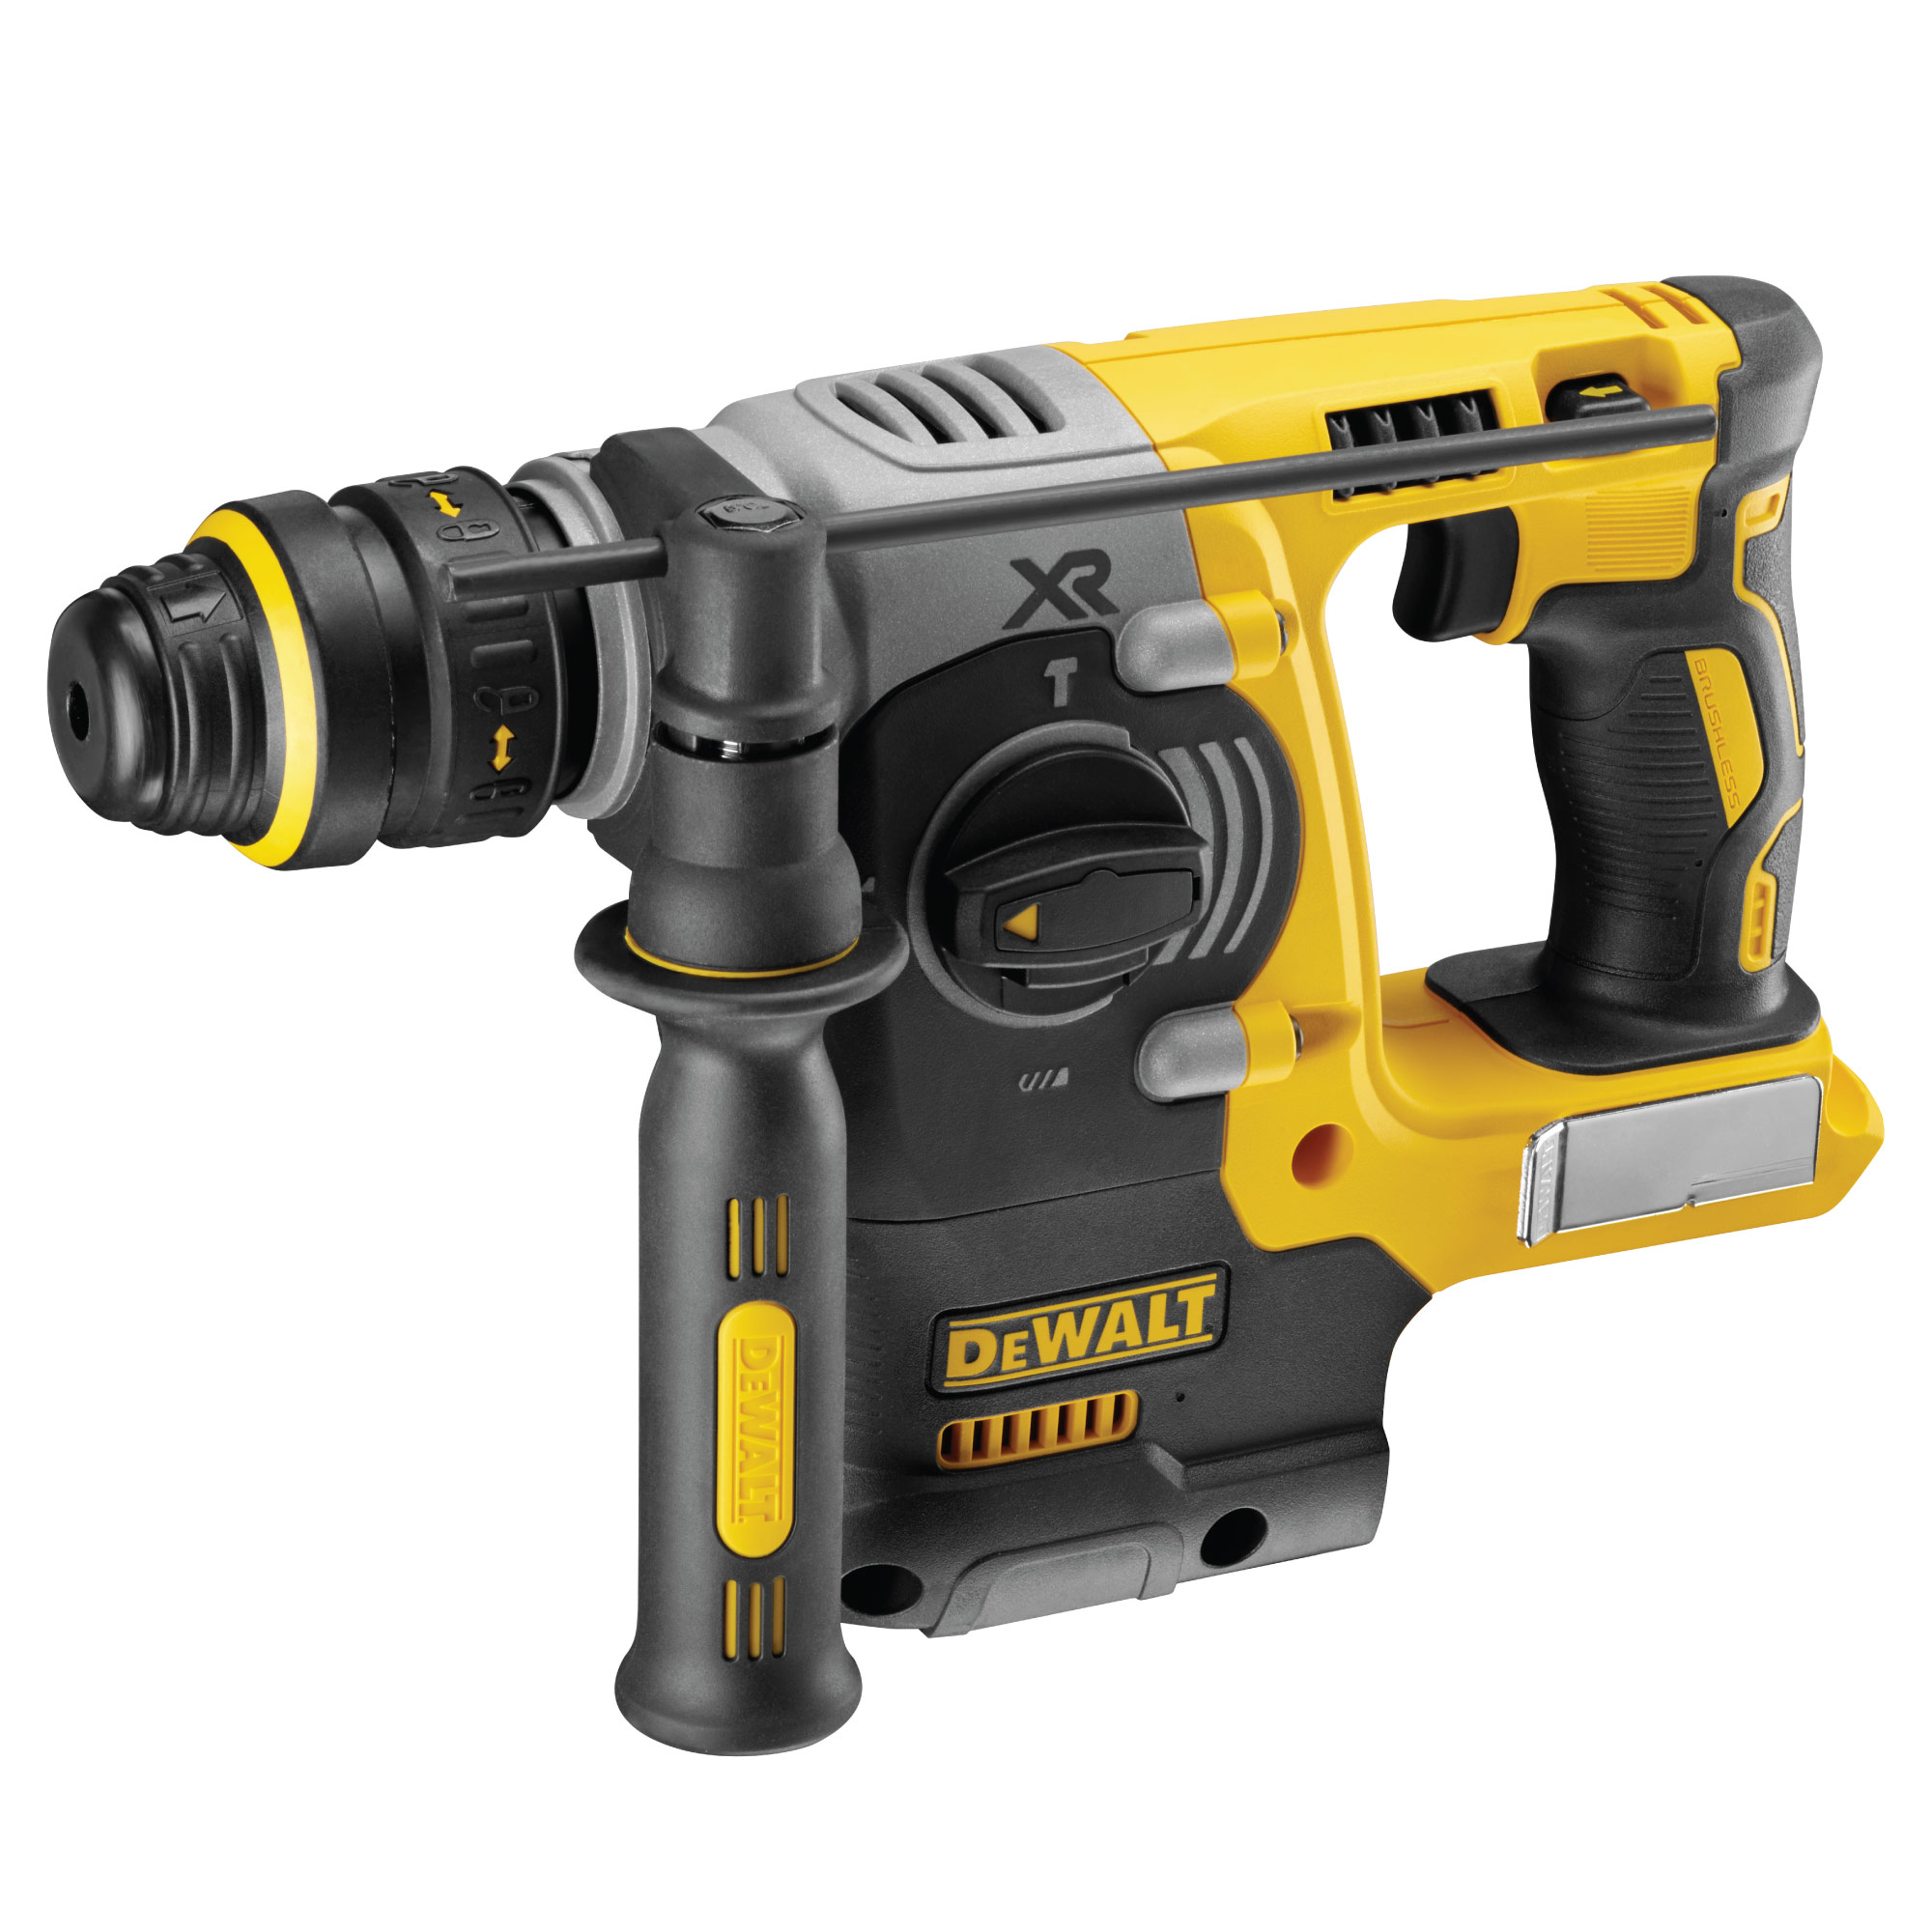 dewalt dch274 dewalt 18v li ion xr brushless sds rotary hammer drill body only. Black Bedroom Furniture Sets. Home Design Ideas